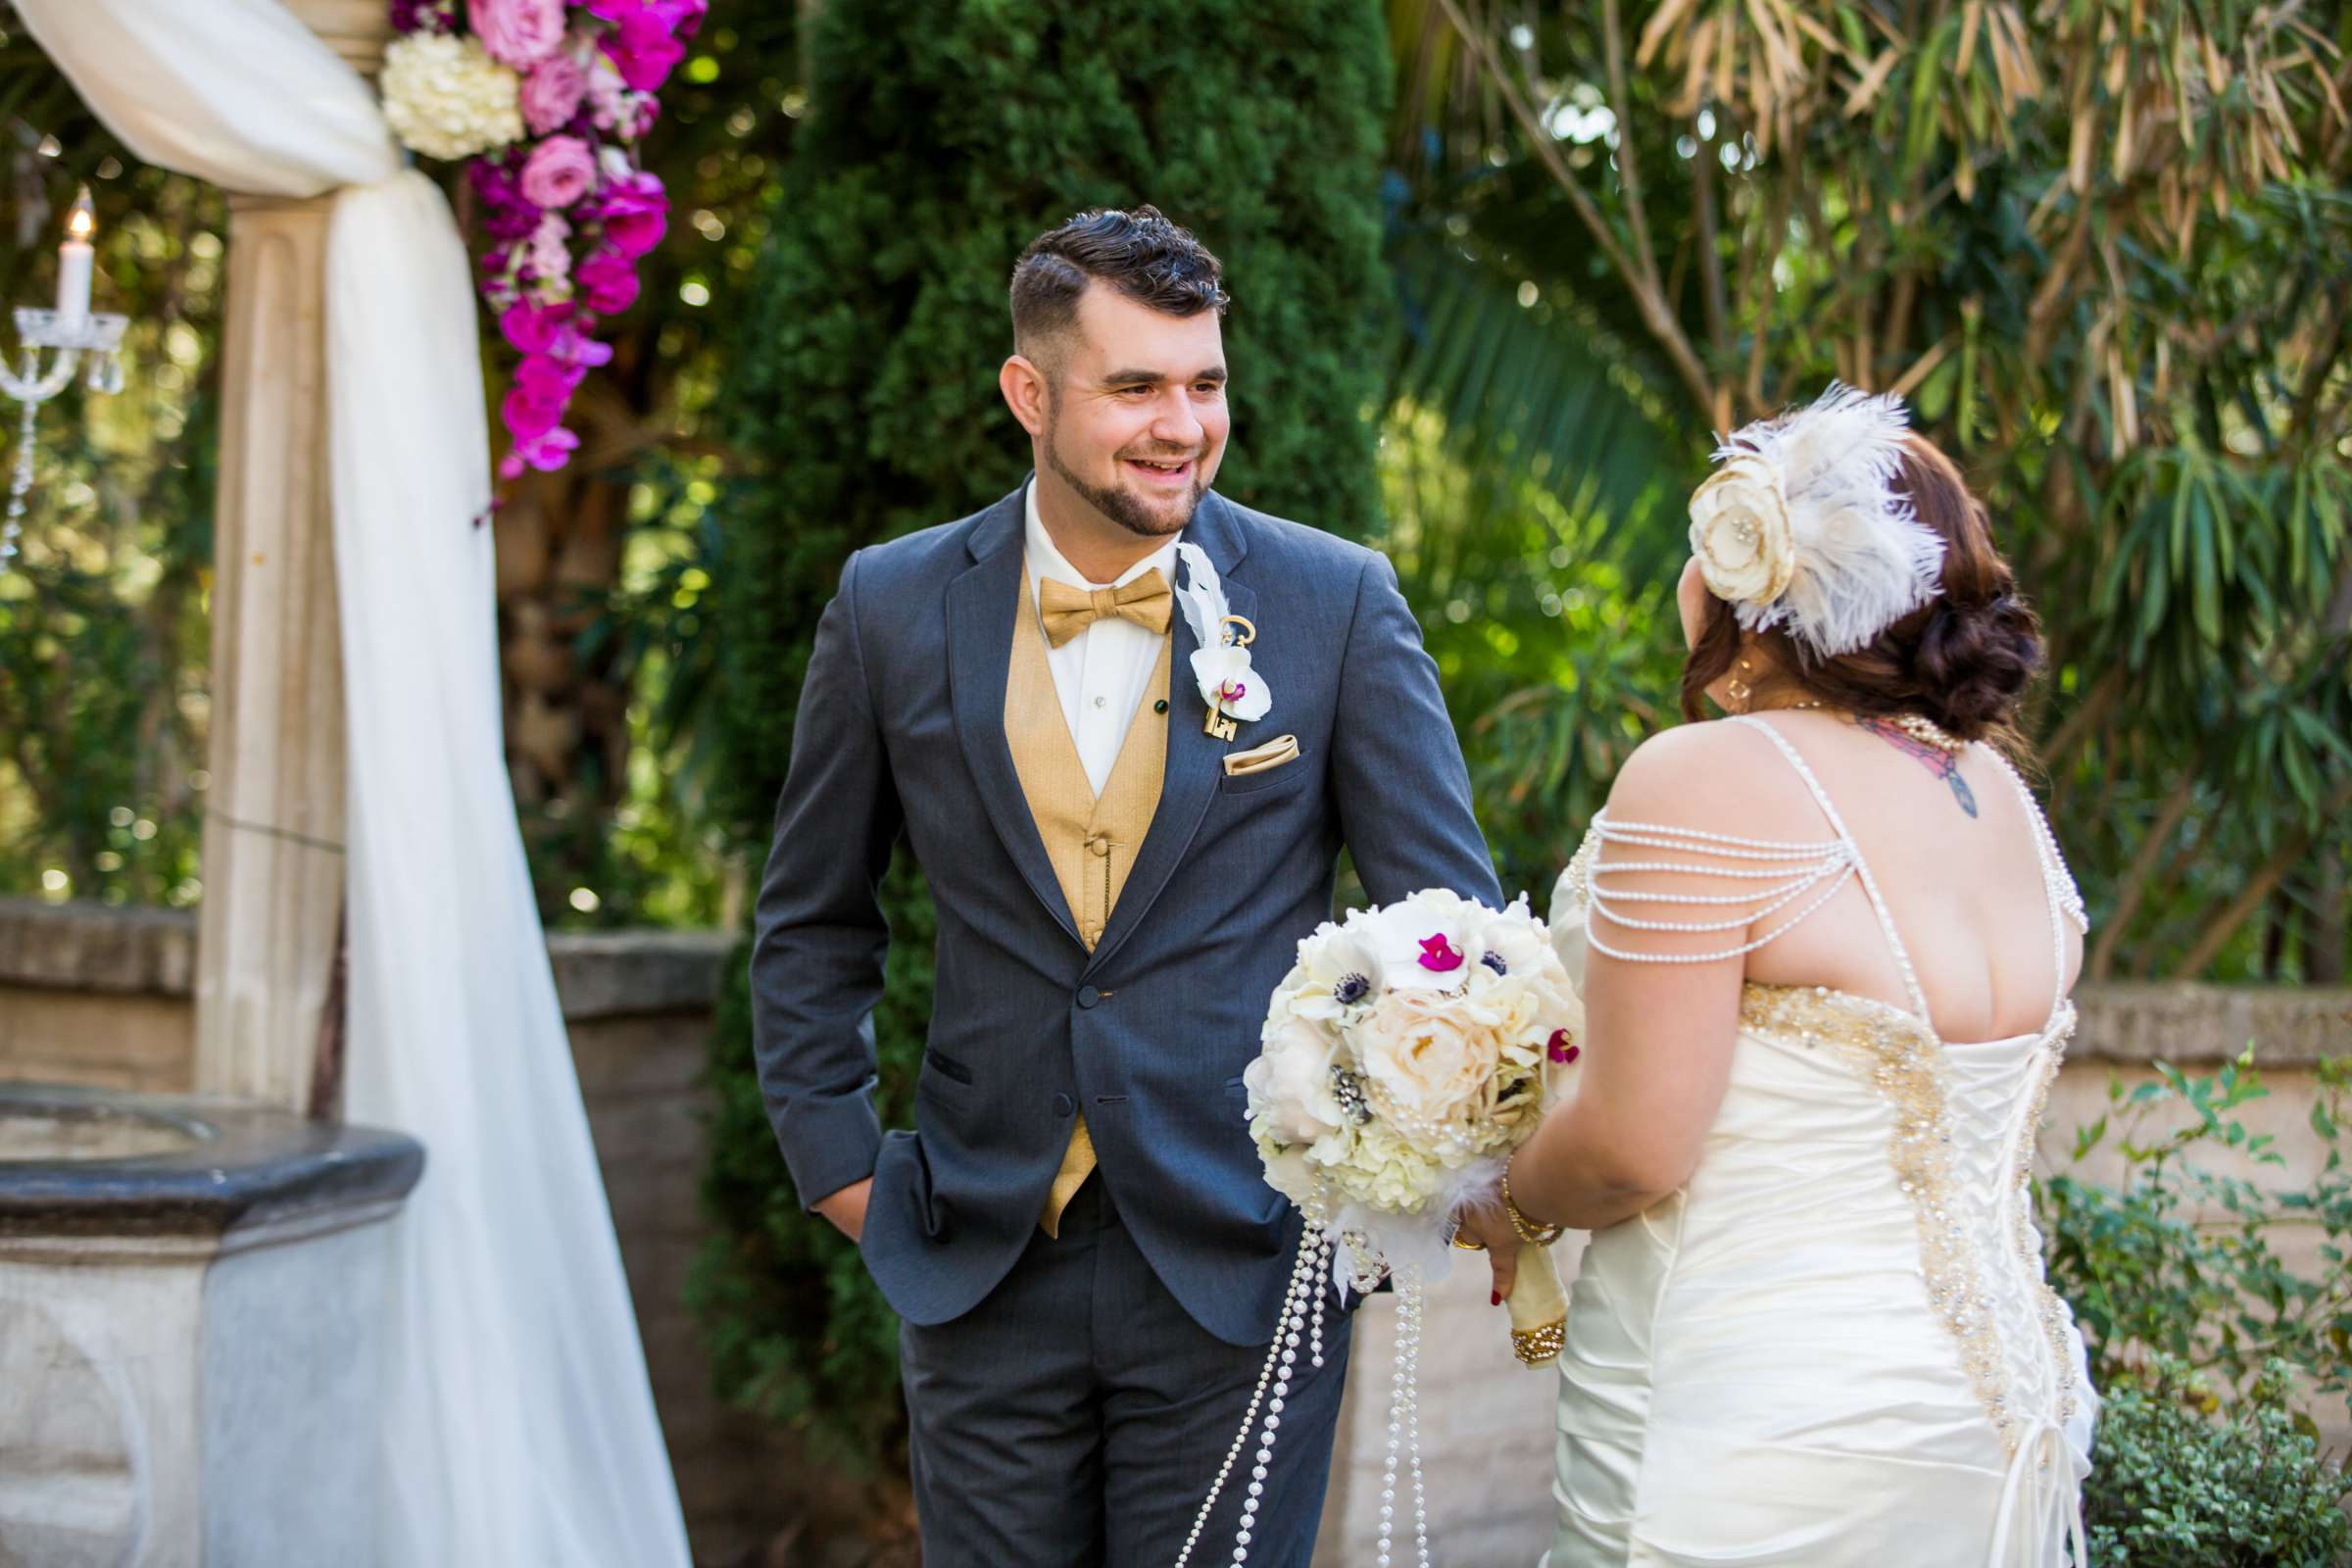 The Prado Wedding coordinated by Breezy Day Weddings, Aalis and Michael Wedding Photo #65 by True Photography